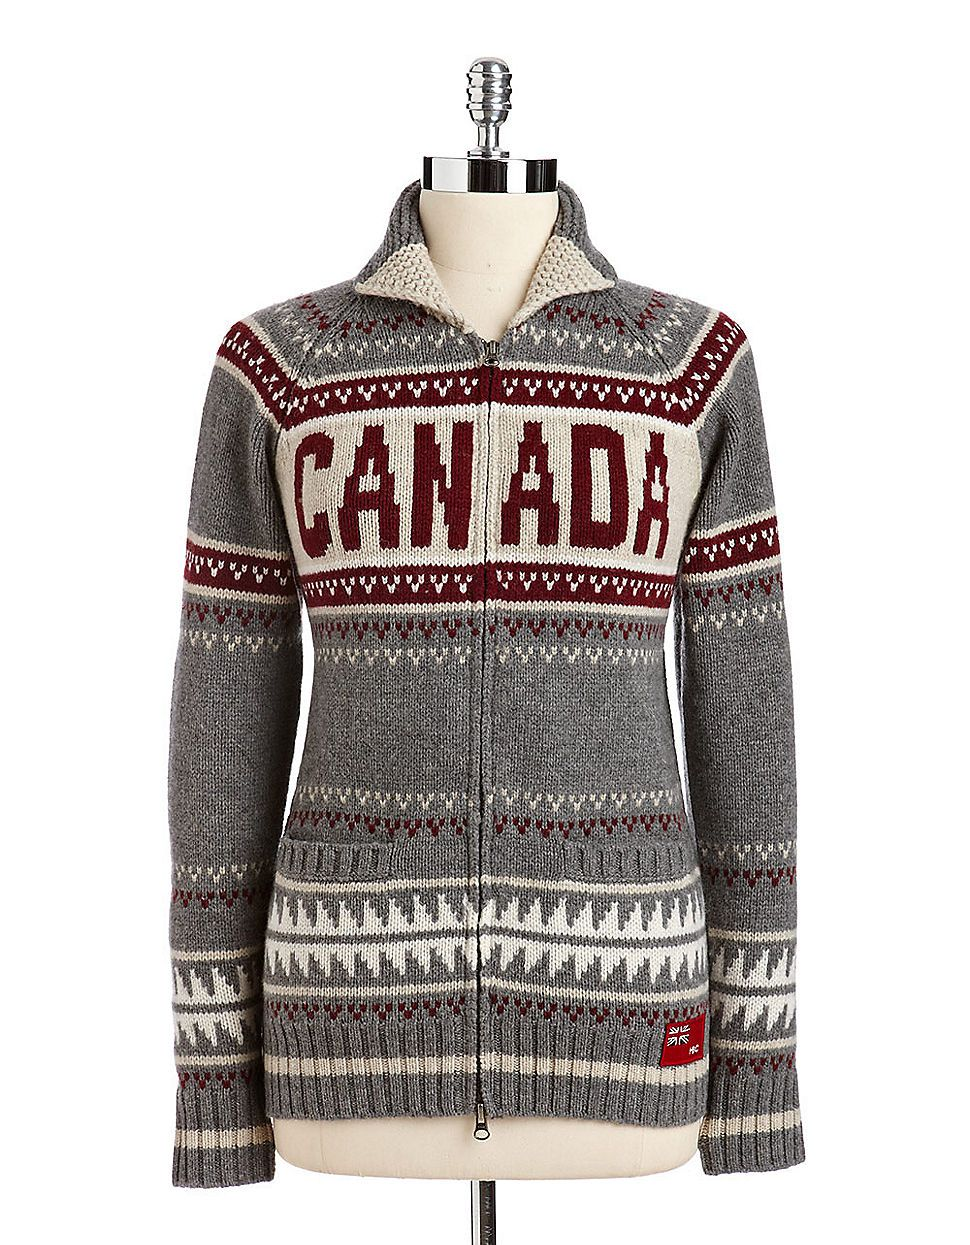 HBC Collections Olympic Collection Wool Knit Sweater